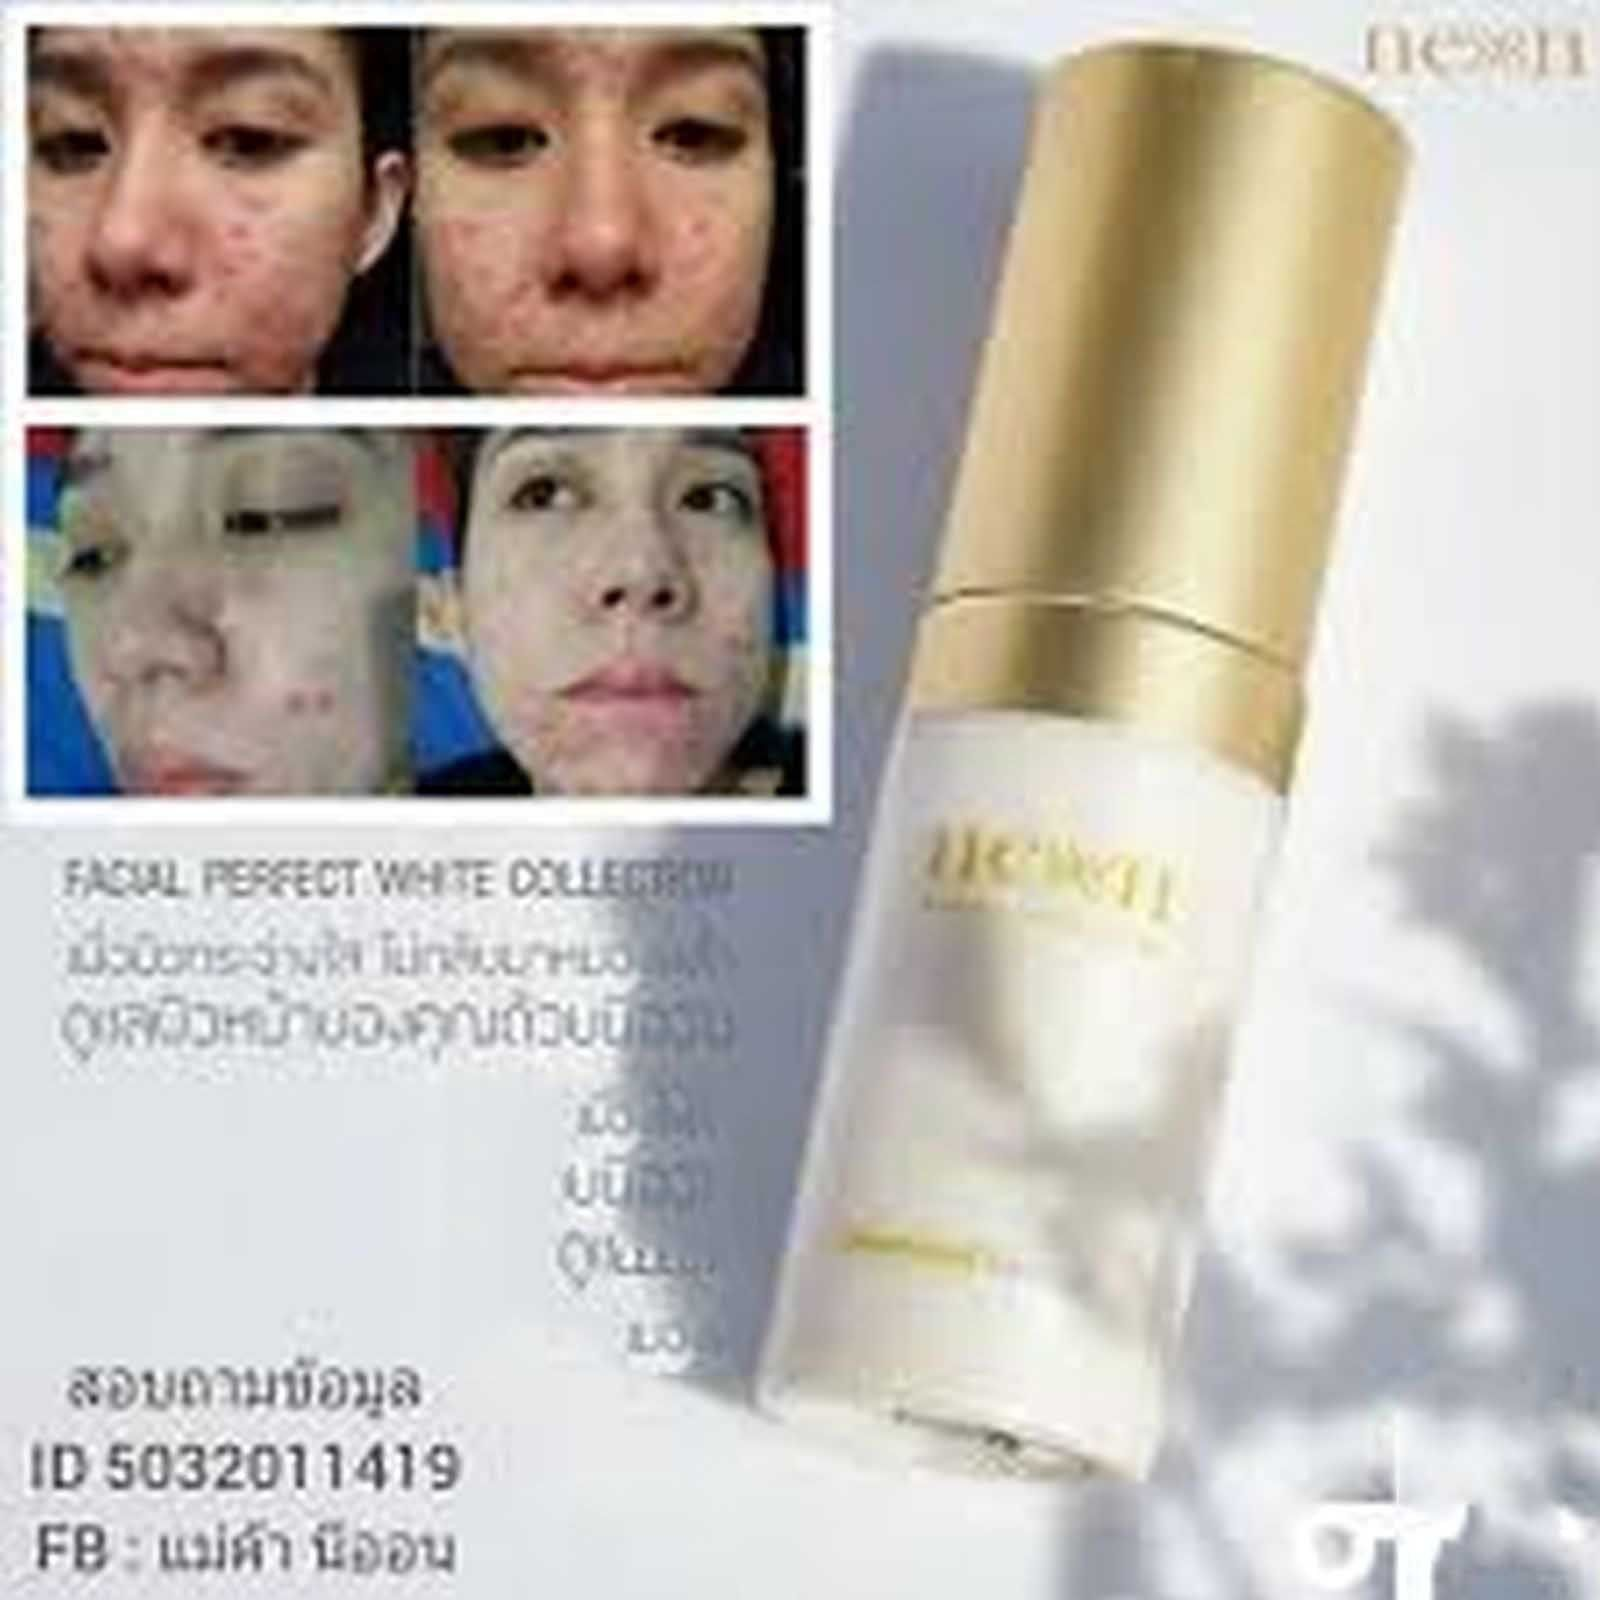 3X Neon Whitening Pure Whitening Face Wash to Face Acne Save Set, Selling